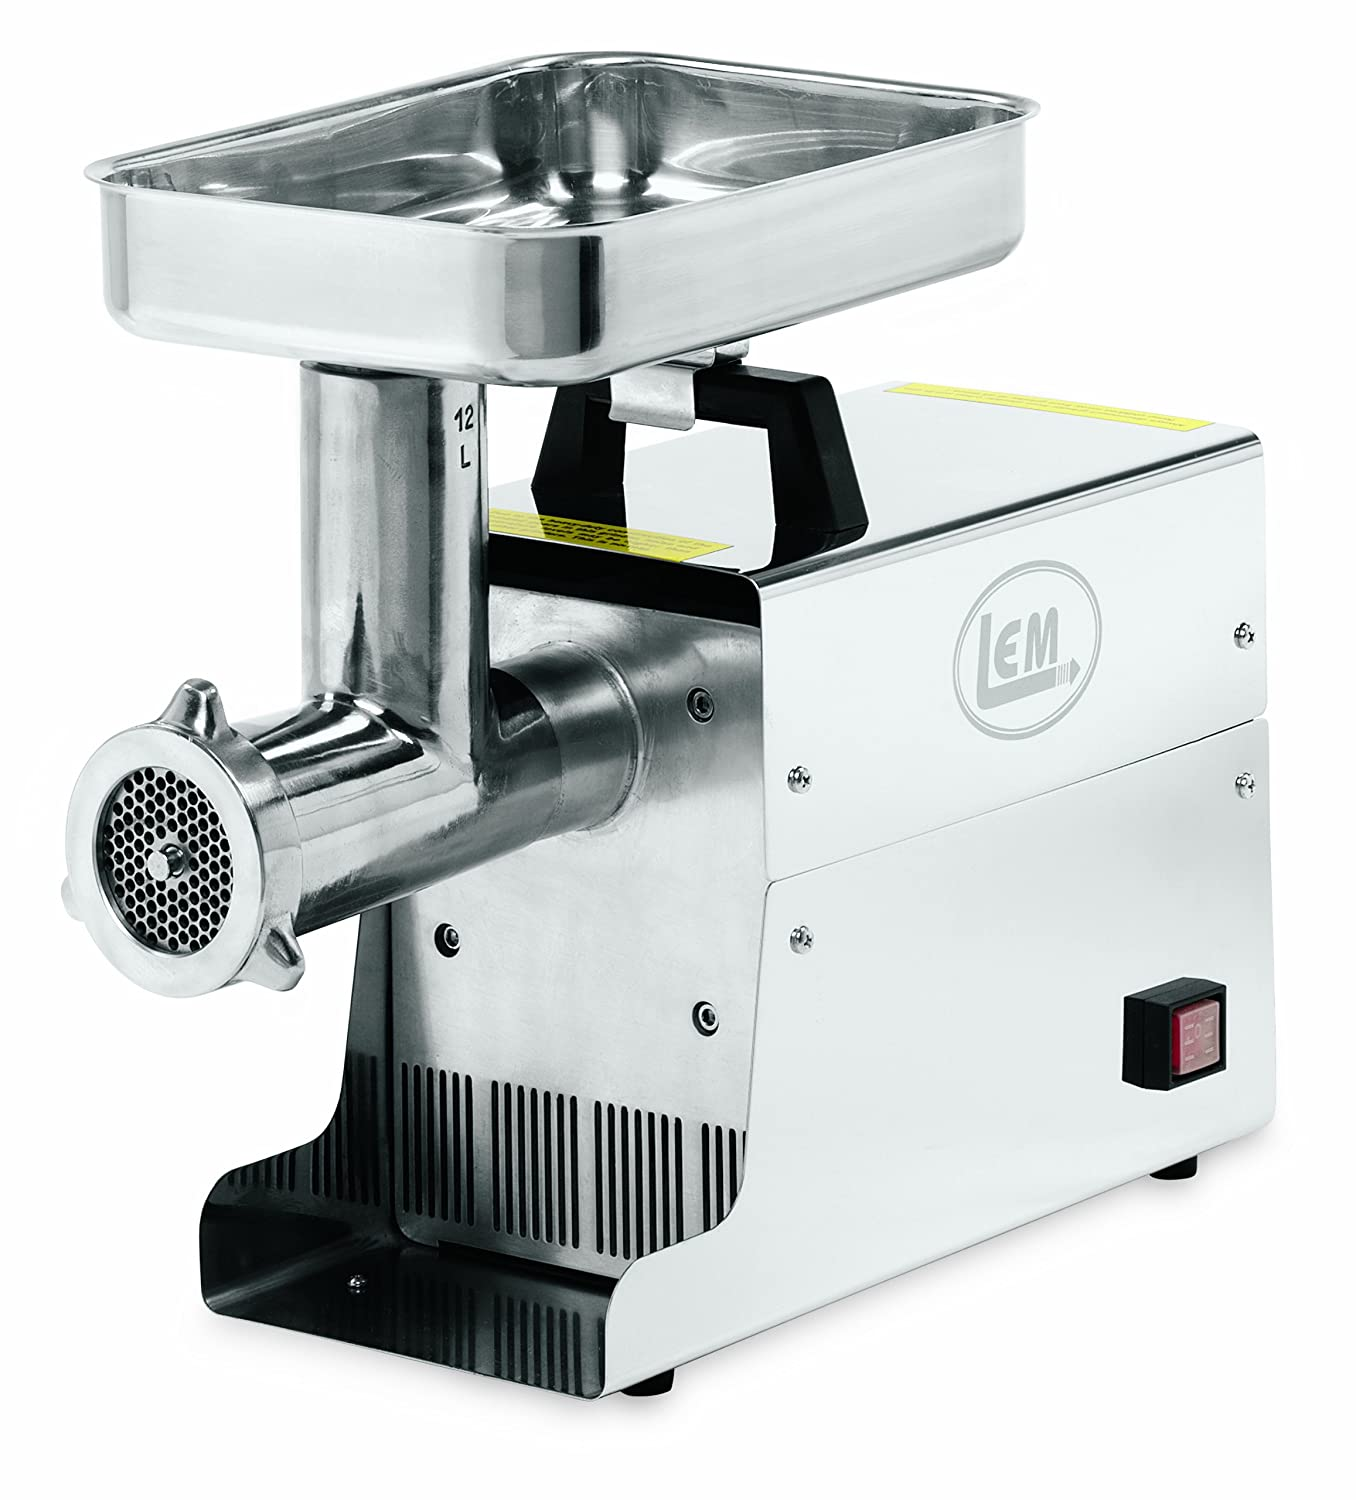 LEM Products .75 HP Best Meat Grinder